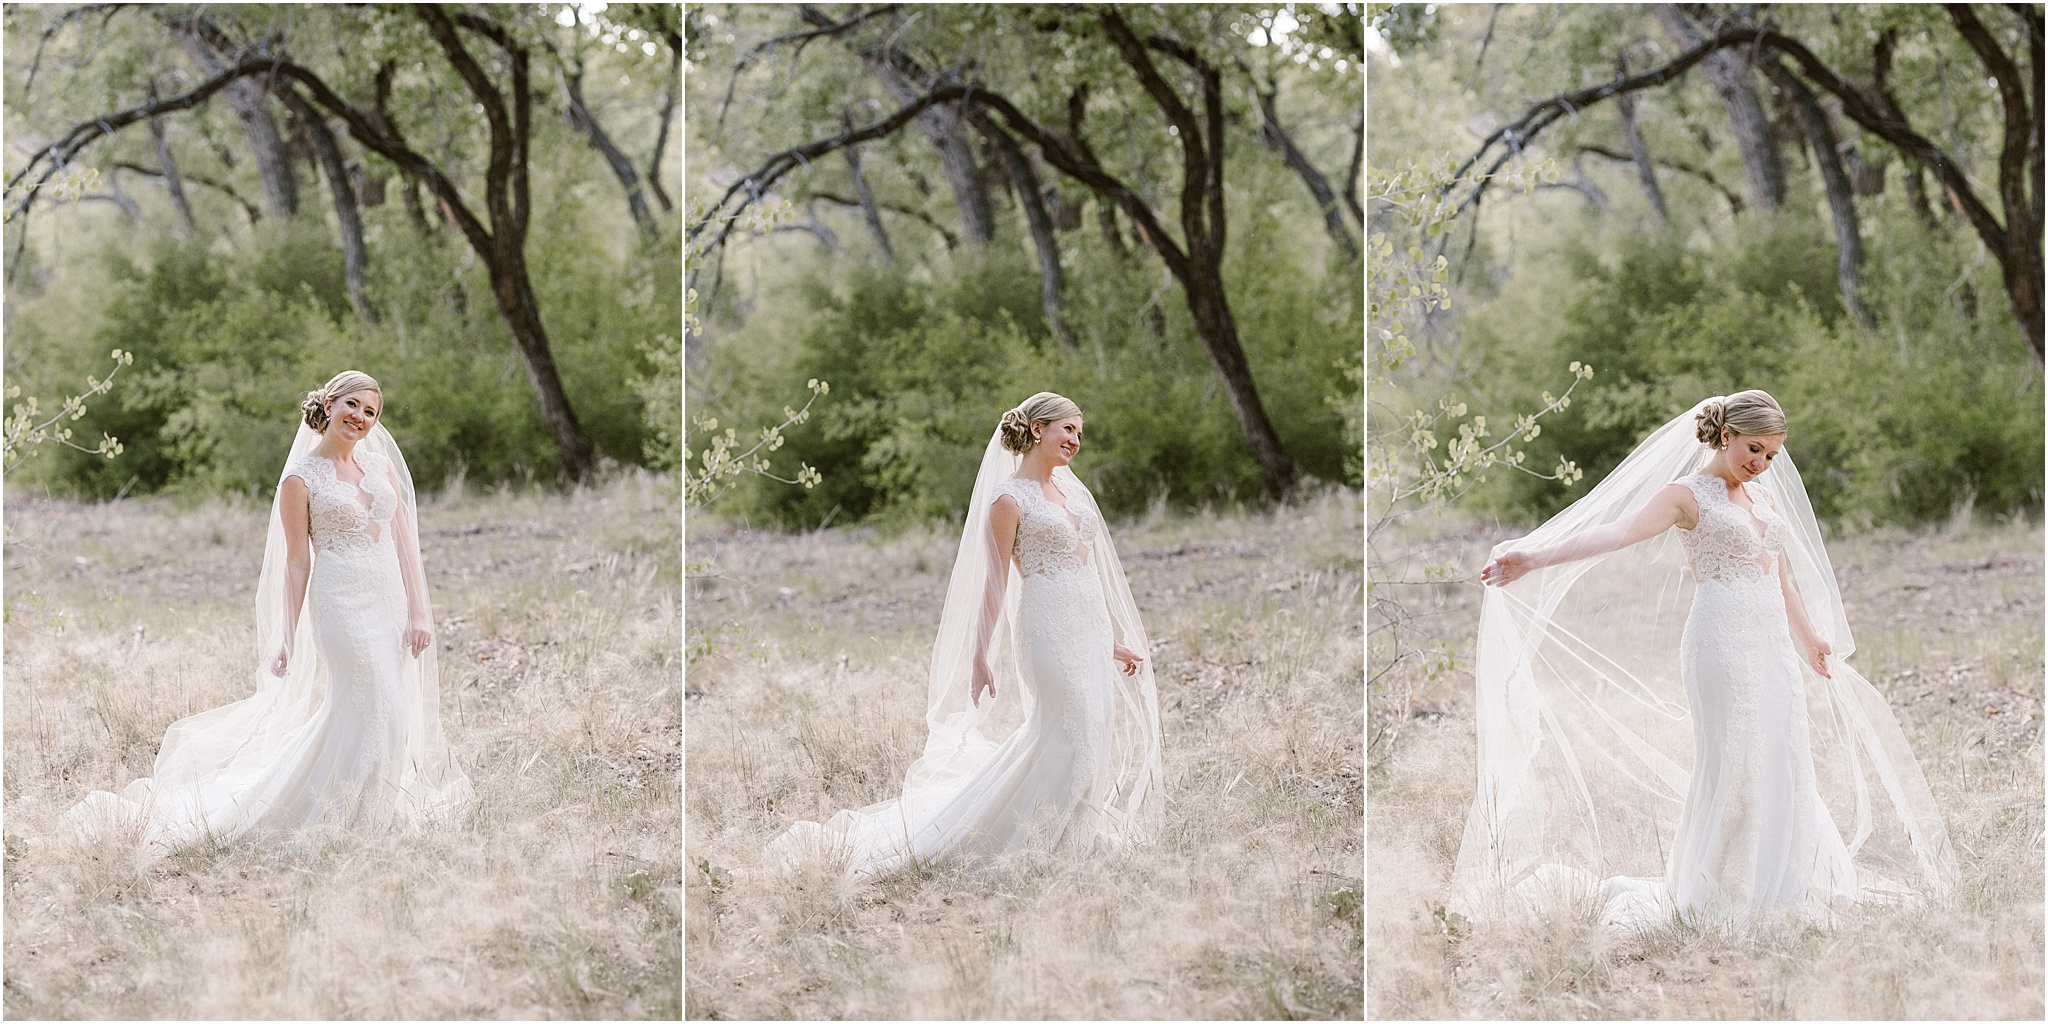 JENNA_JEROME_BLUE ROSE PHOTOGRAPHY_ABQ WEDDING_31